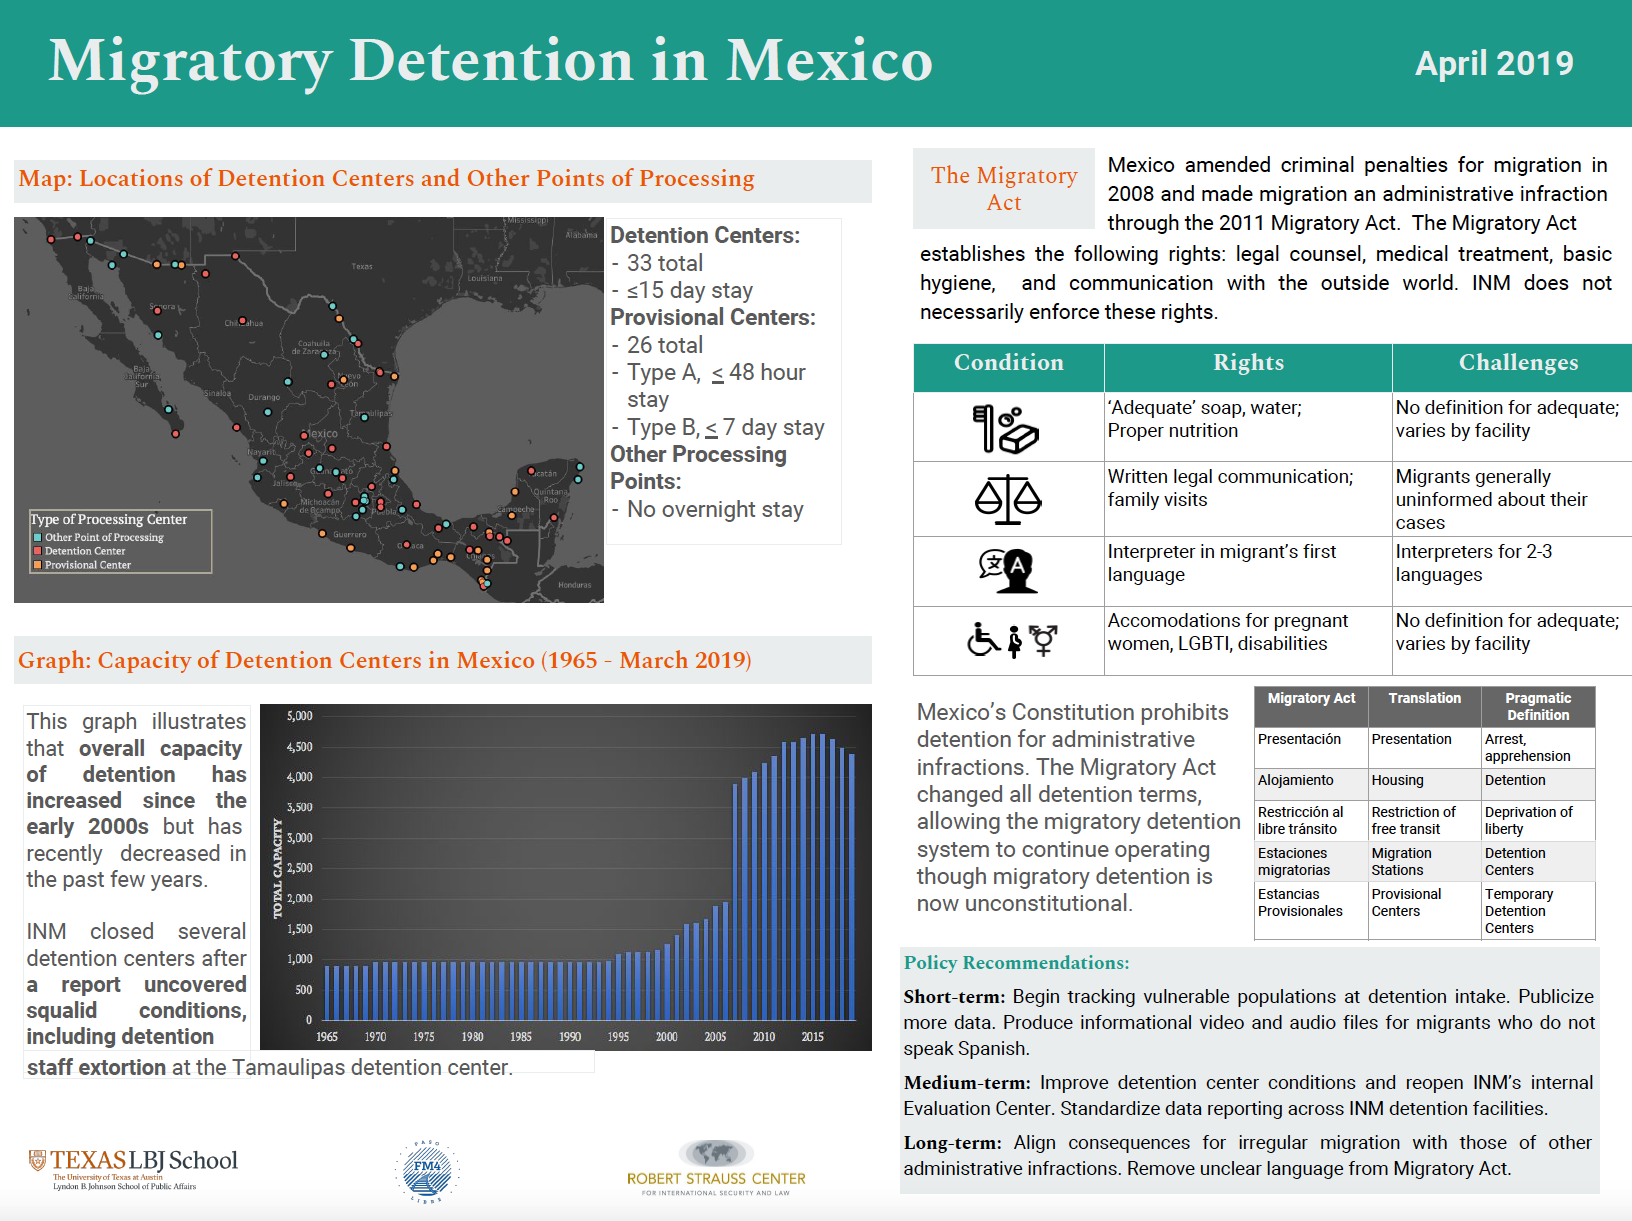 Innovation Bound 2019 research poster: Migratory Detention in Mexico